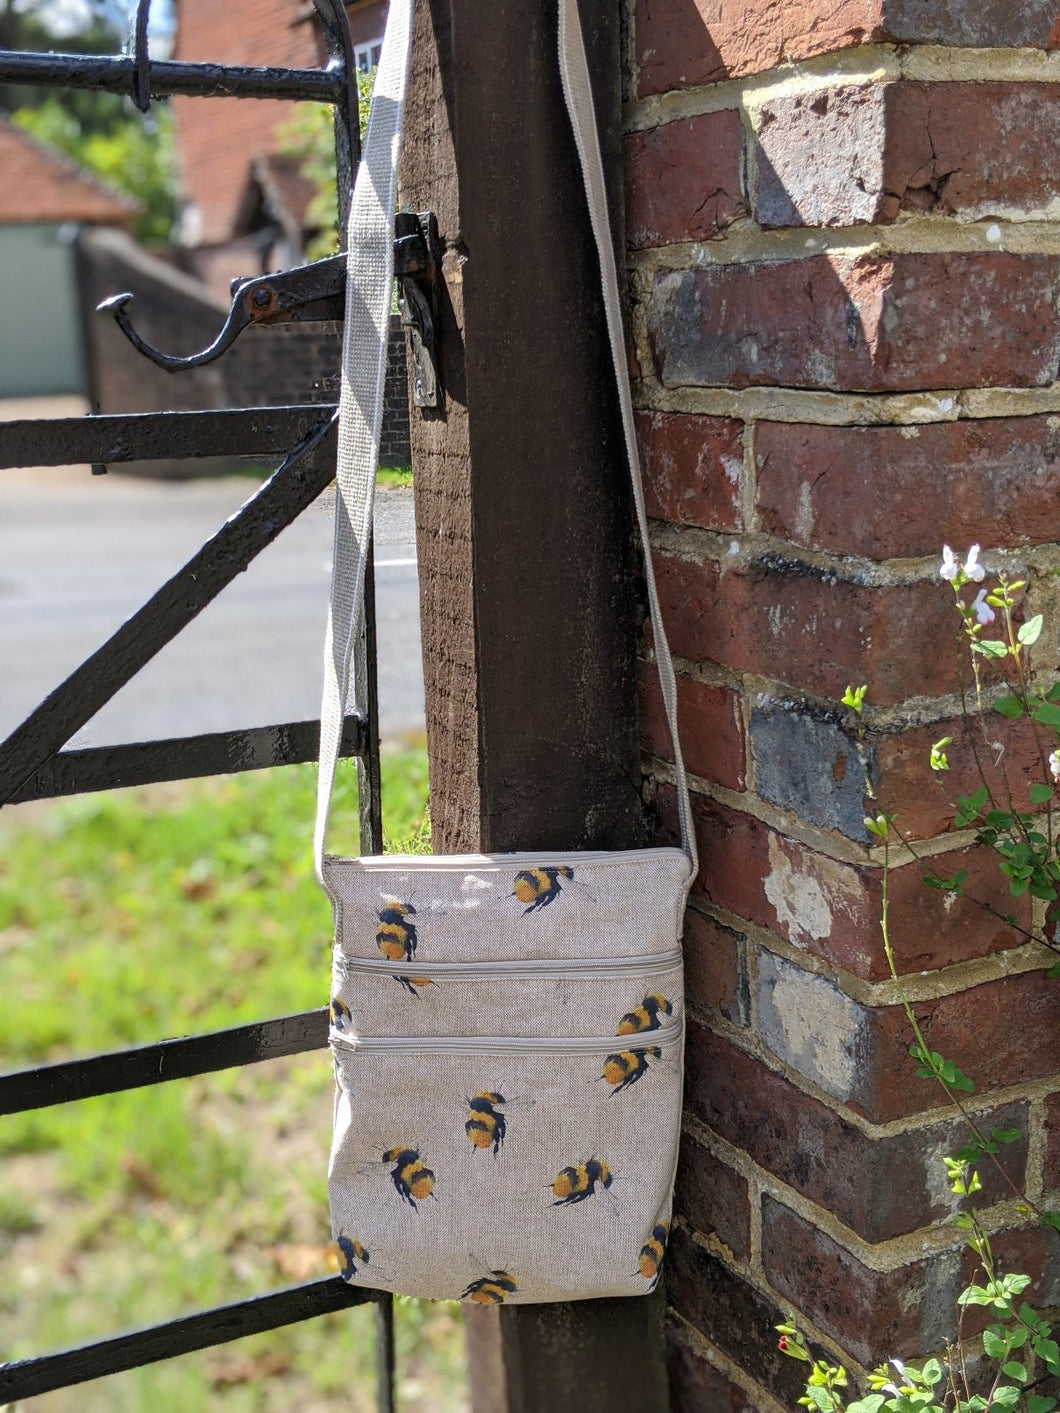 Triple zip bag bees sewing kit